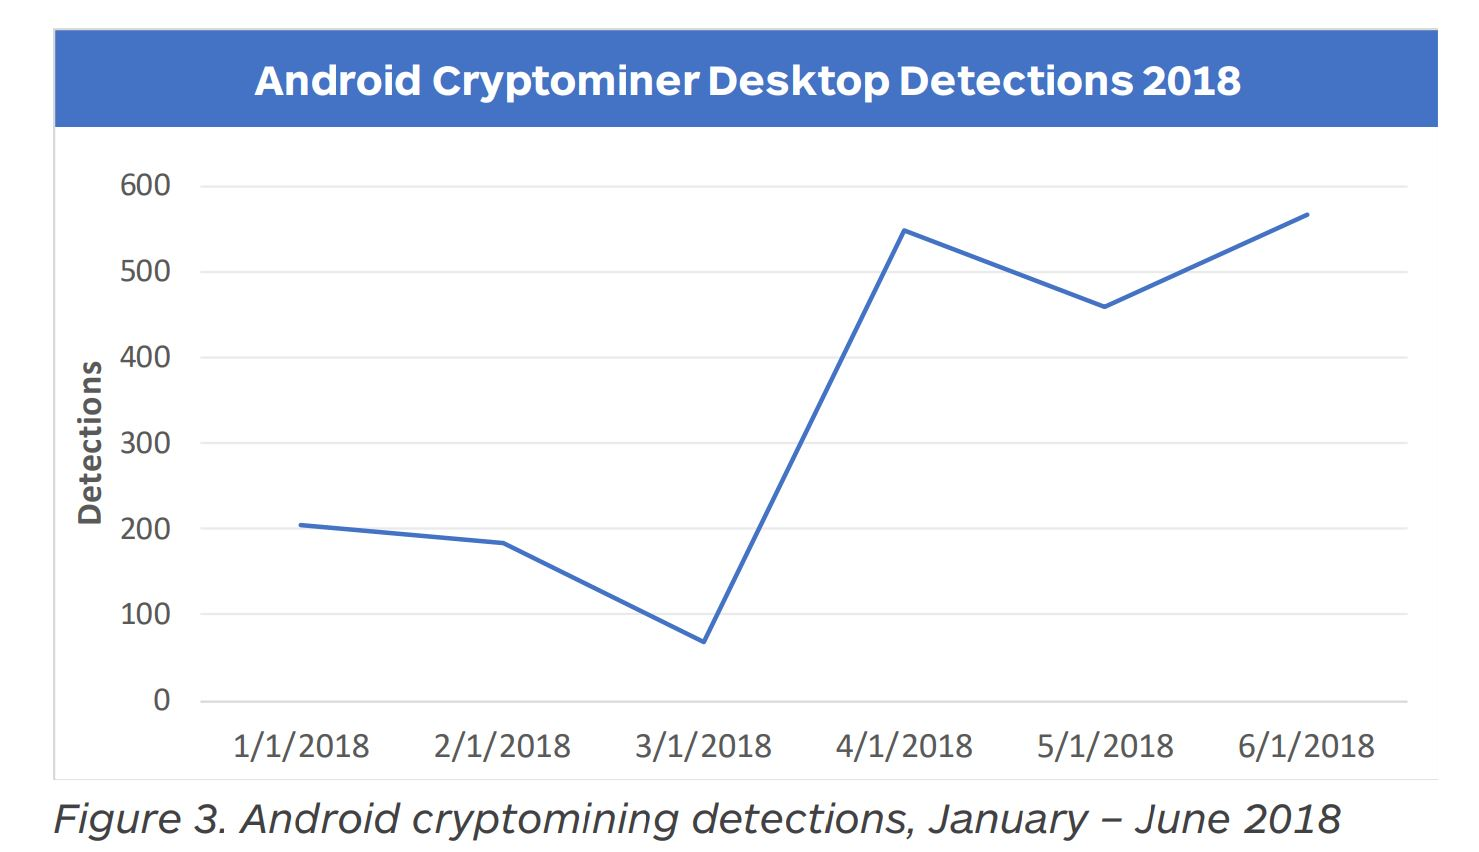 """MalwareBytes Report Says CryptoJacking Cases Are """"Plateauing"""" 1"""